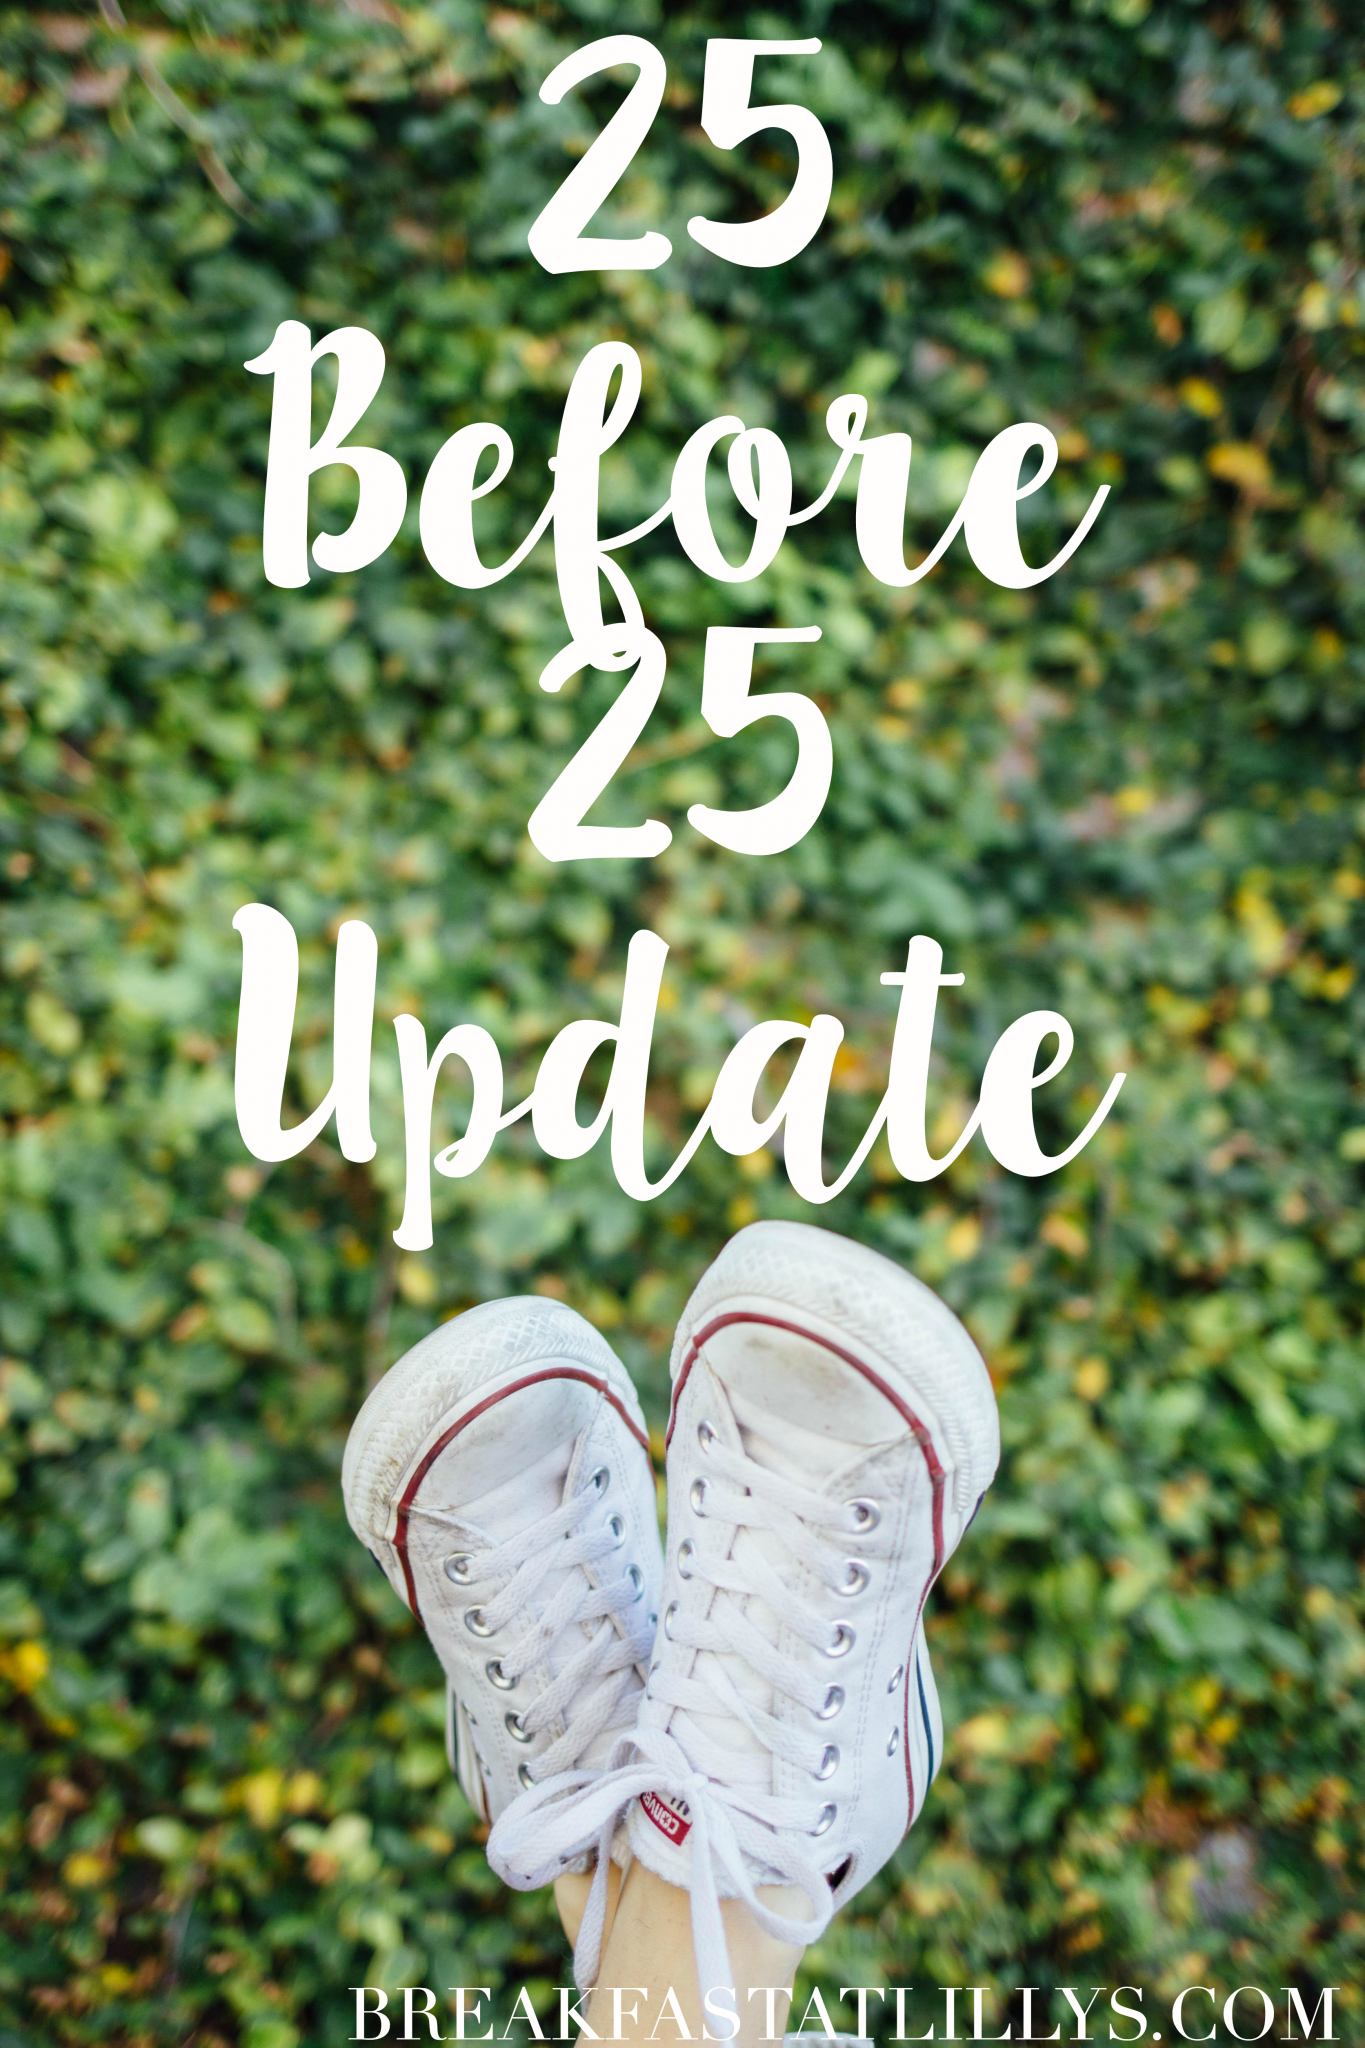 25 Before 25 Update